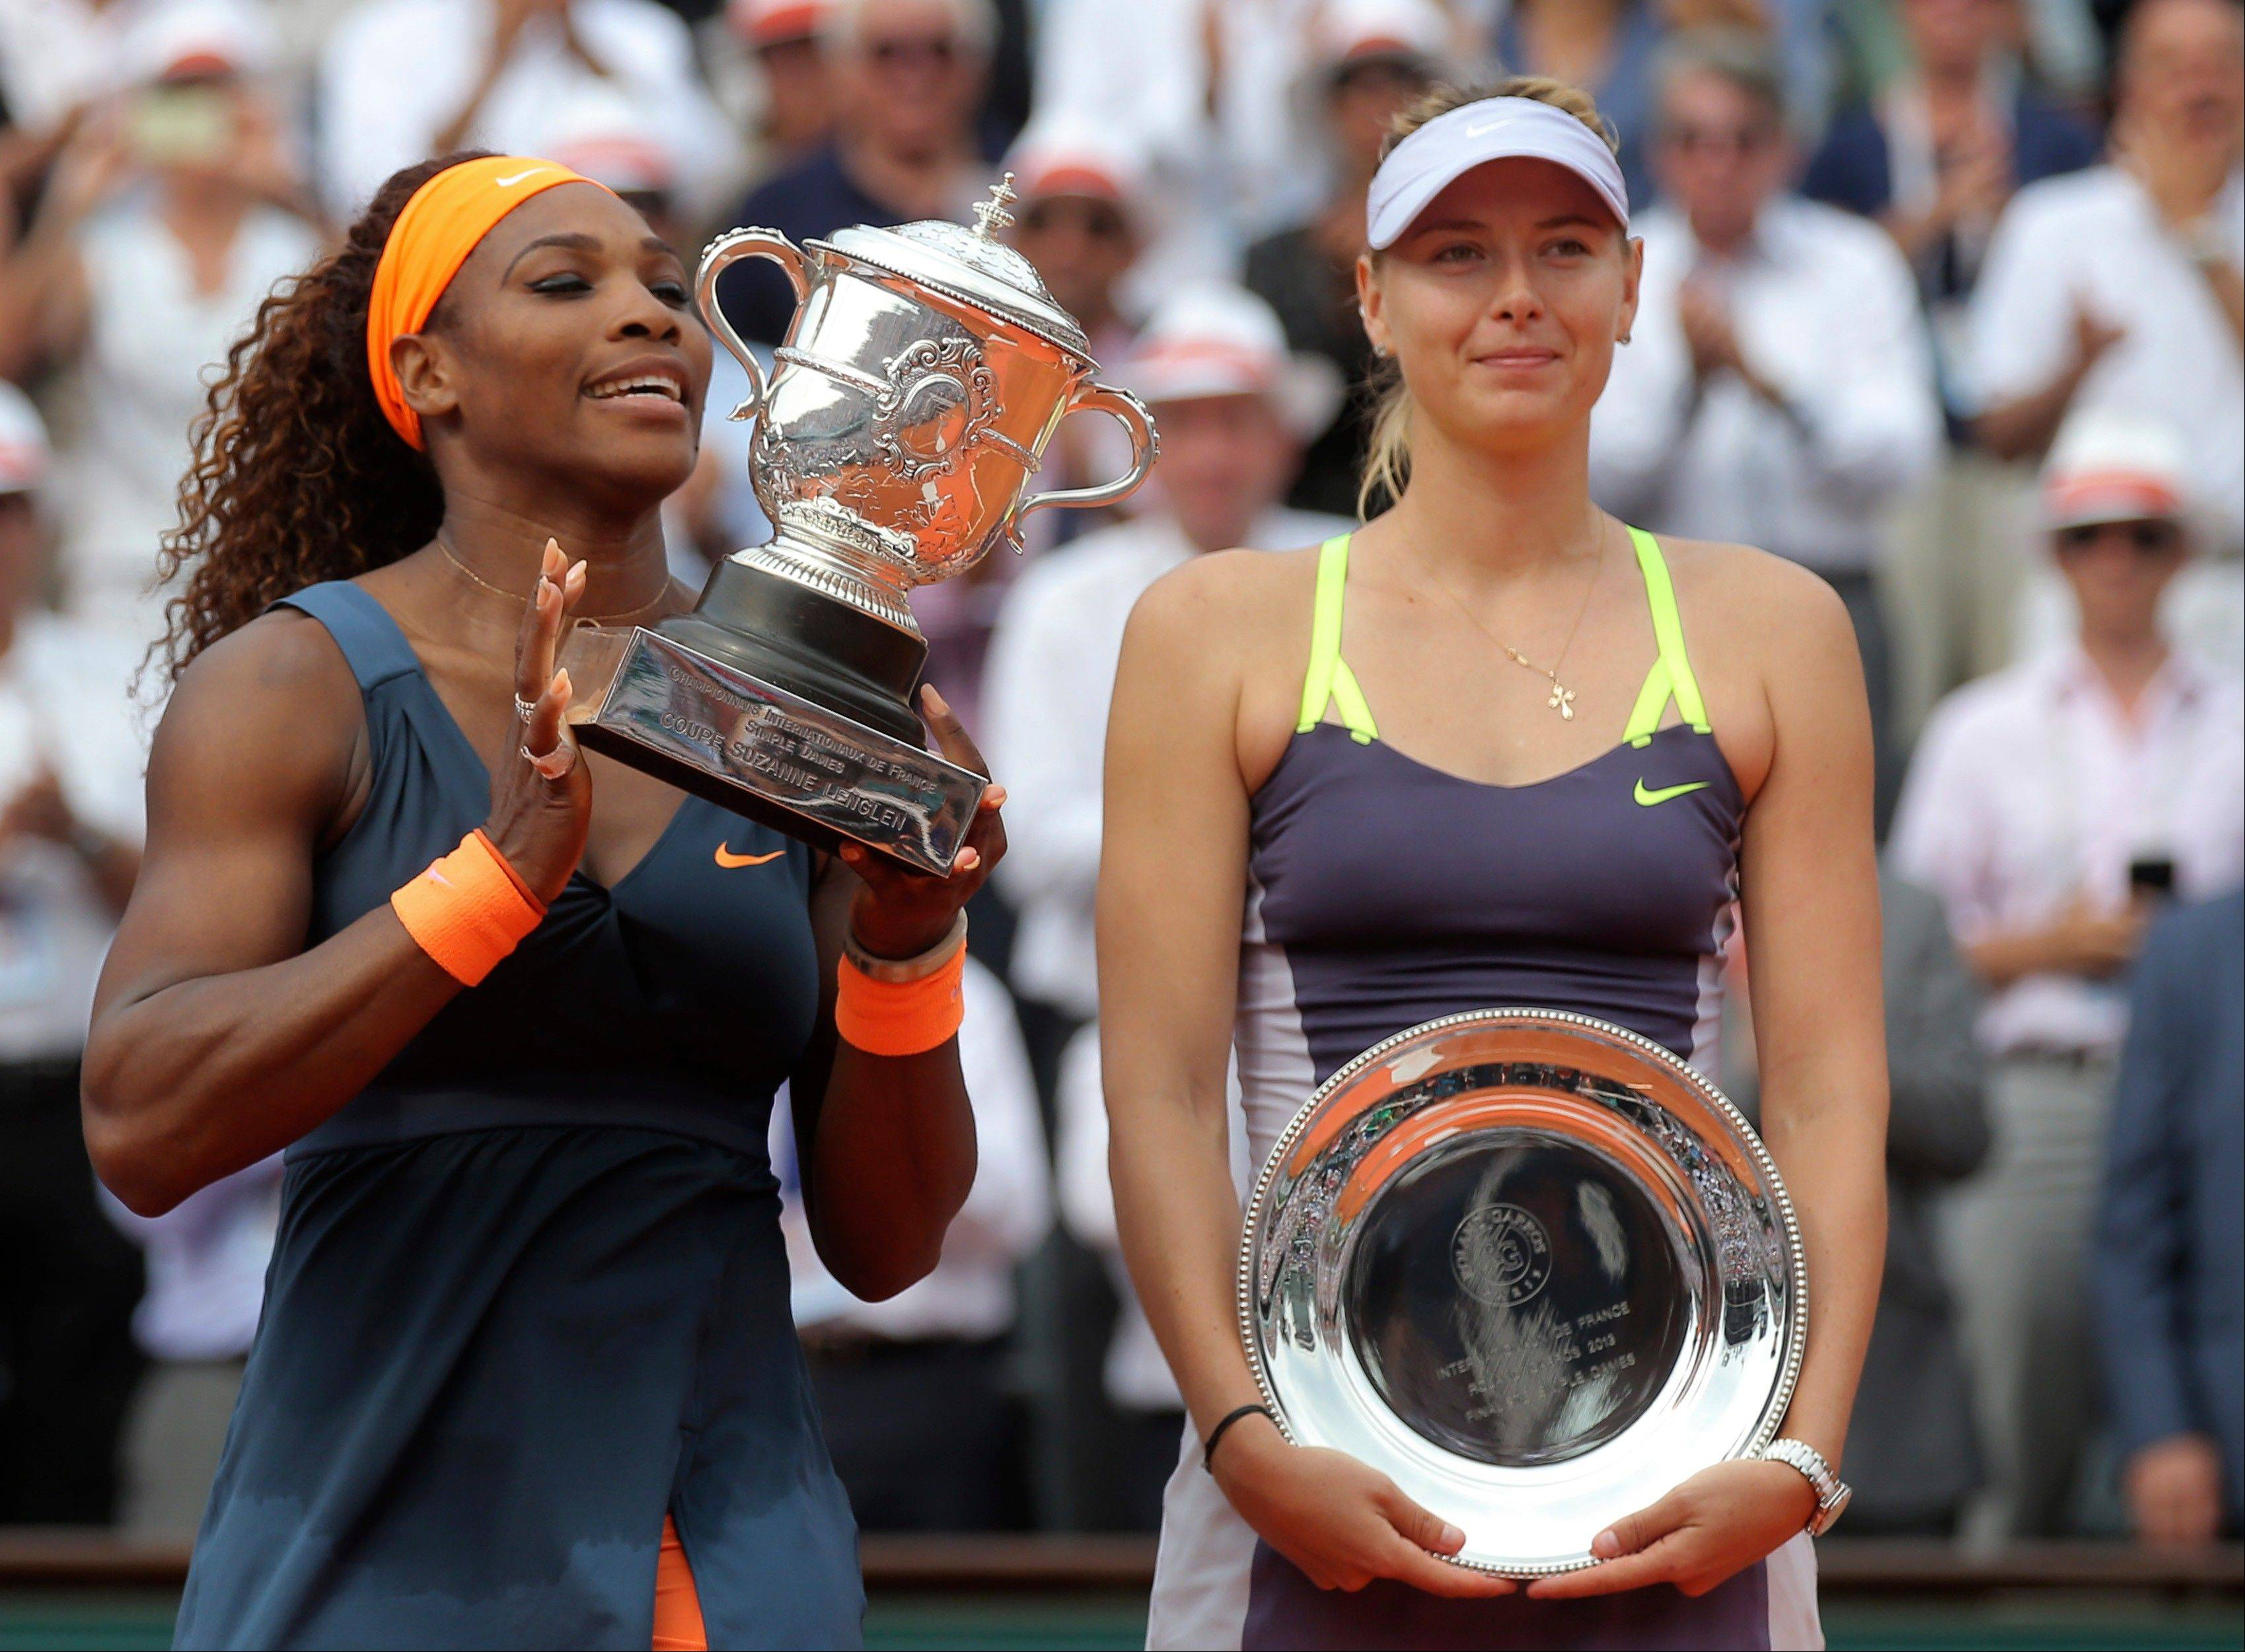 Serena Williams of the U.S., left, holds the winner�s cup after defeating Russia�s Maria Sharapova after the Women�s final match of the French Open tennis tournament earlier this month at the Roland Garros stadium in Paris.